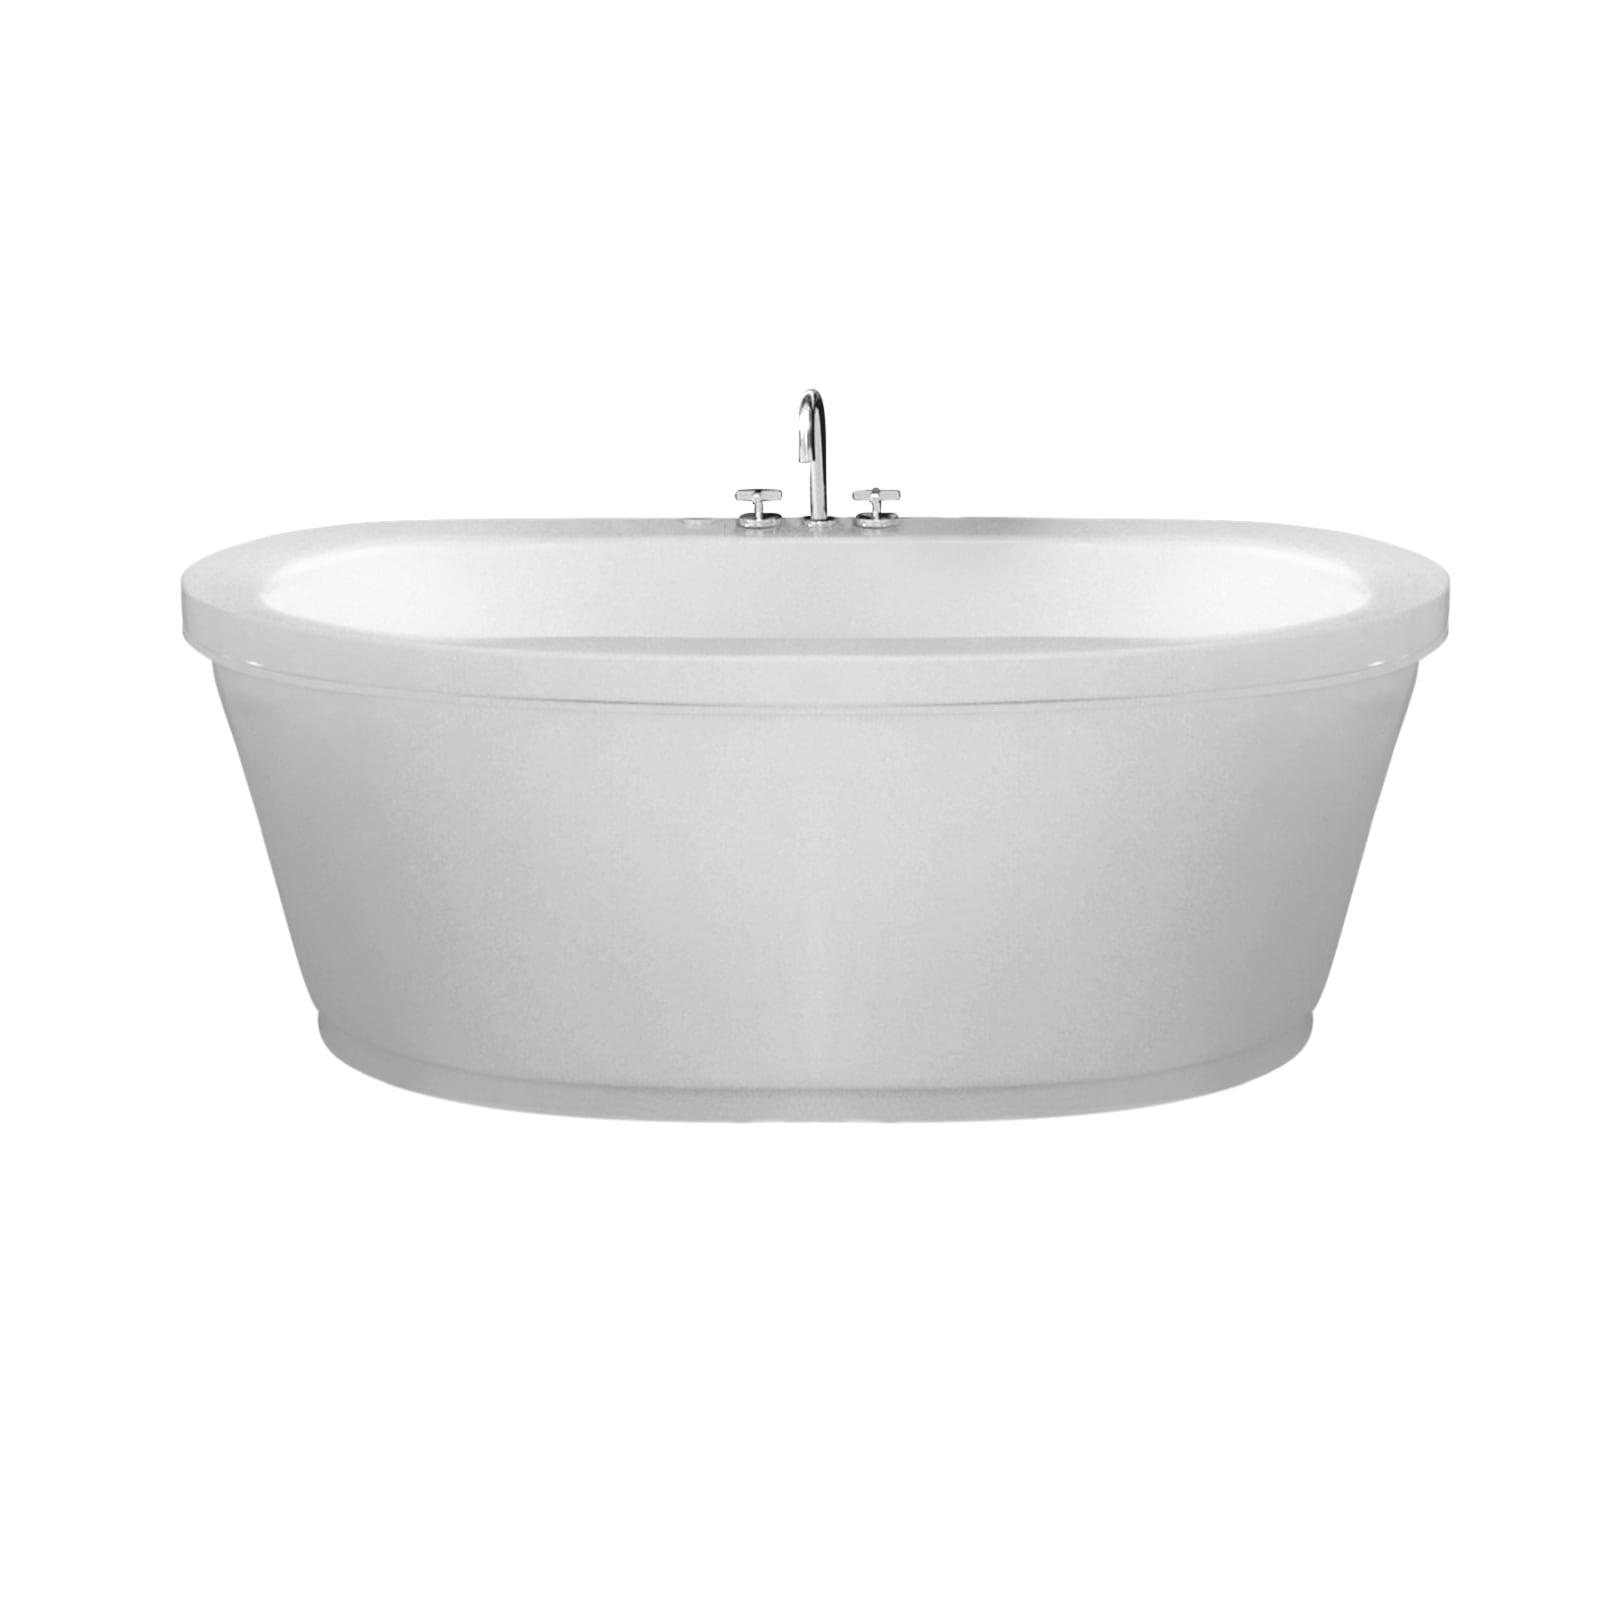 Maax 105359-000 Jazz Freestanding Soaker Tub | QualityBath.com